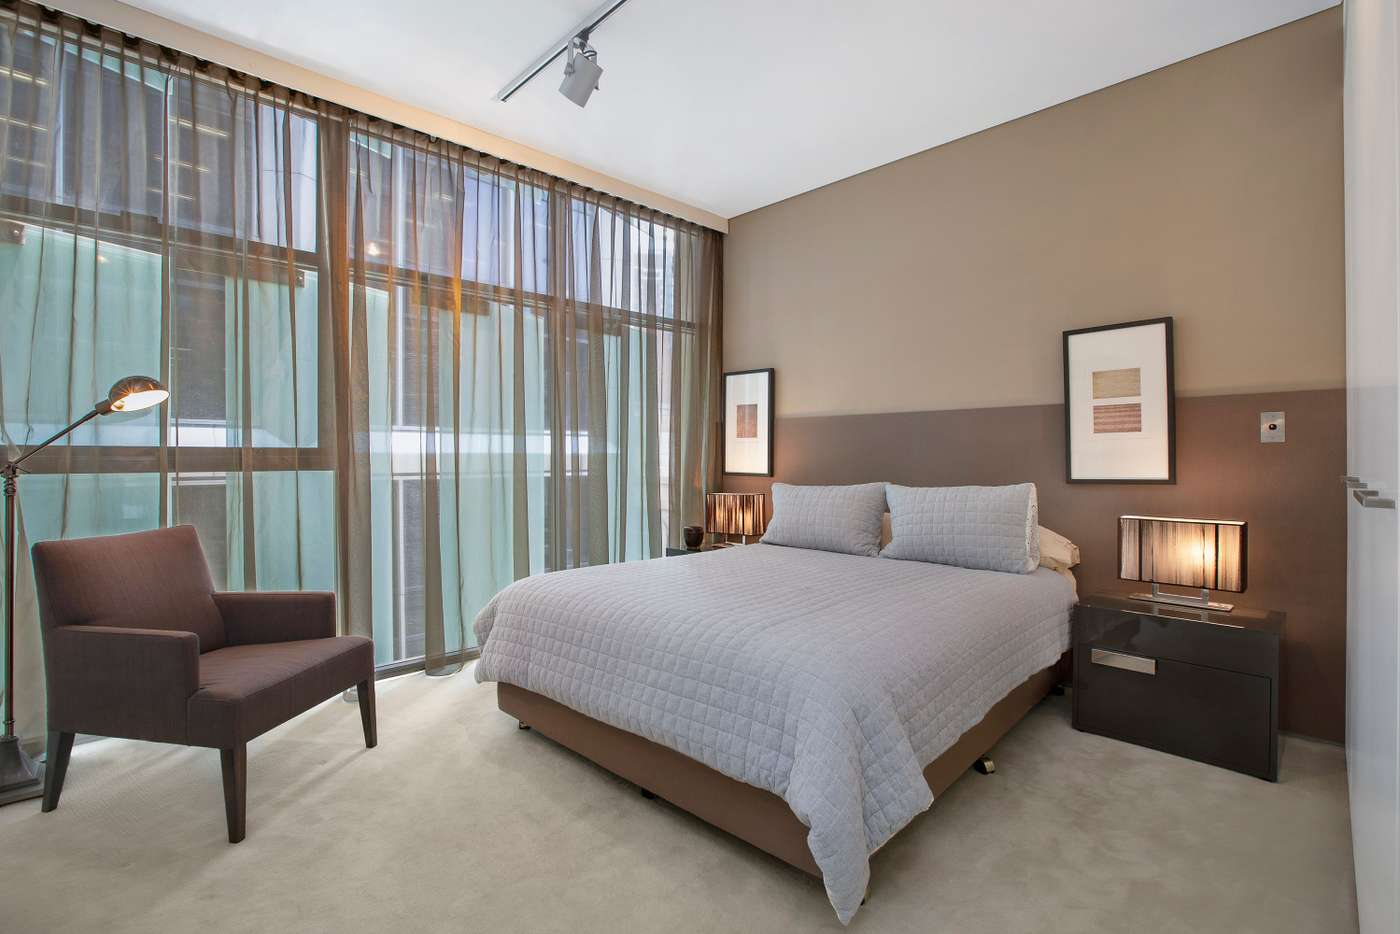 Seventh view of Homely apartment listing, 701/185 Macquarie Street, Sydney NSW 2000